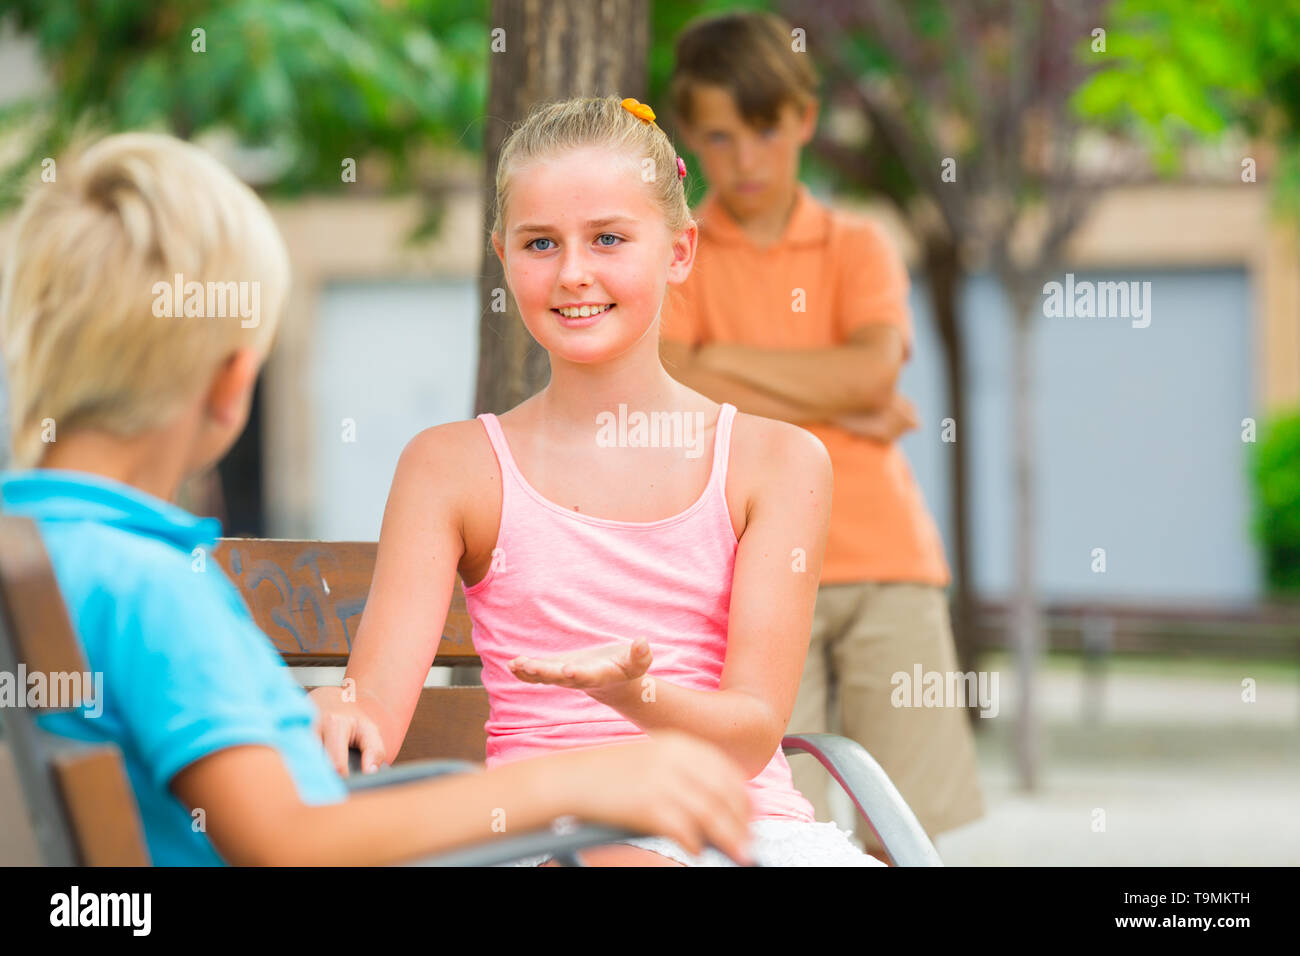 Kids are talking in the distance from their offended friend. - Stock Image